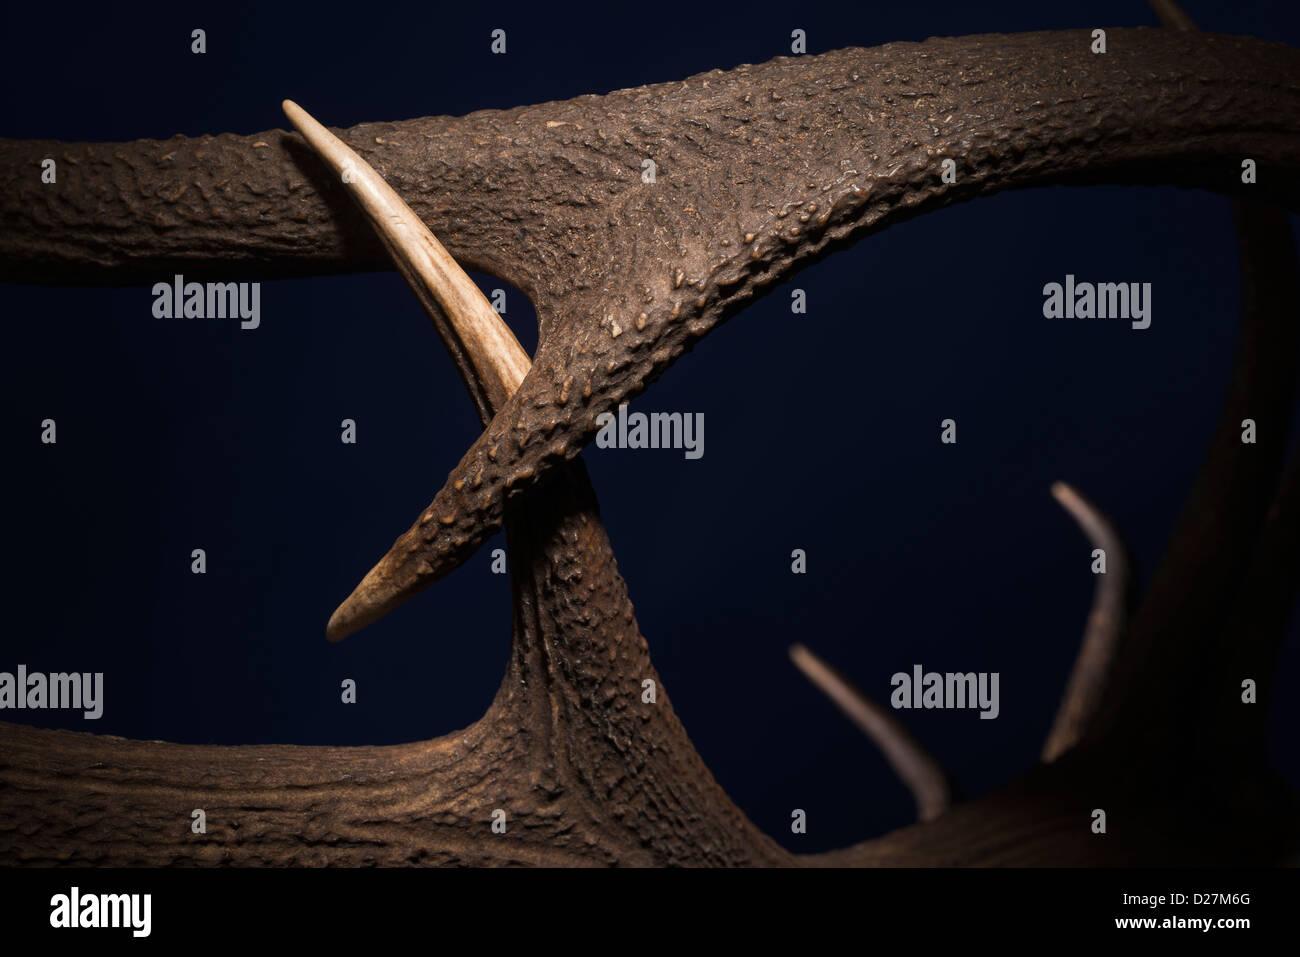 Clash of antlers. Stags lock horns in battle. - Stock Image